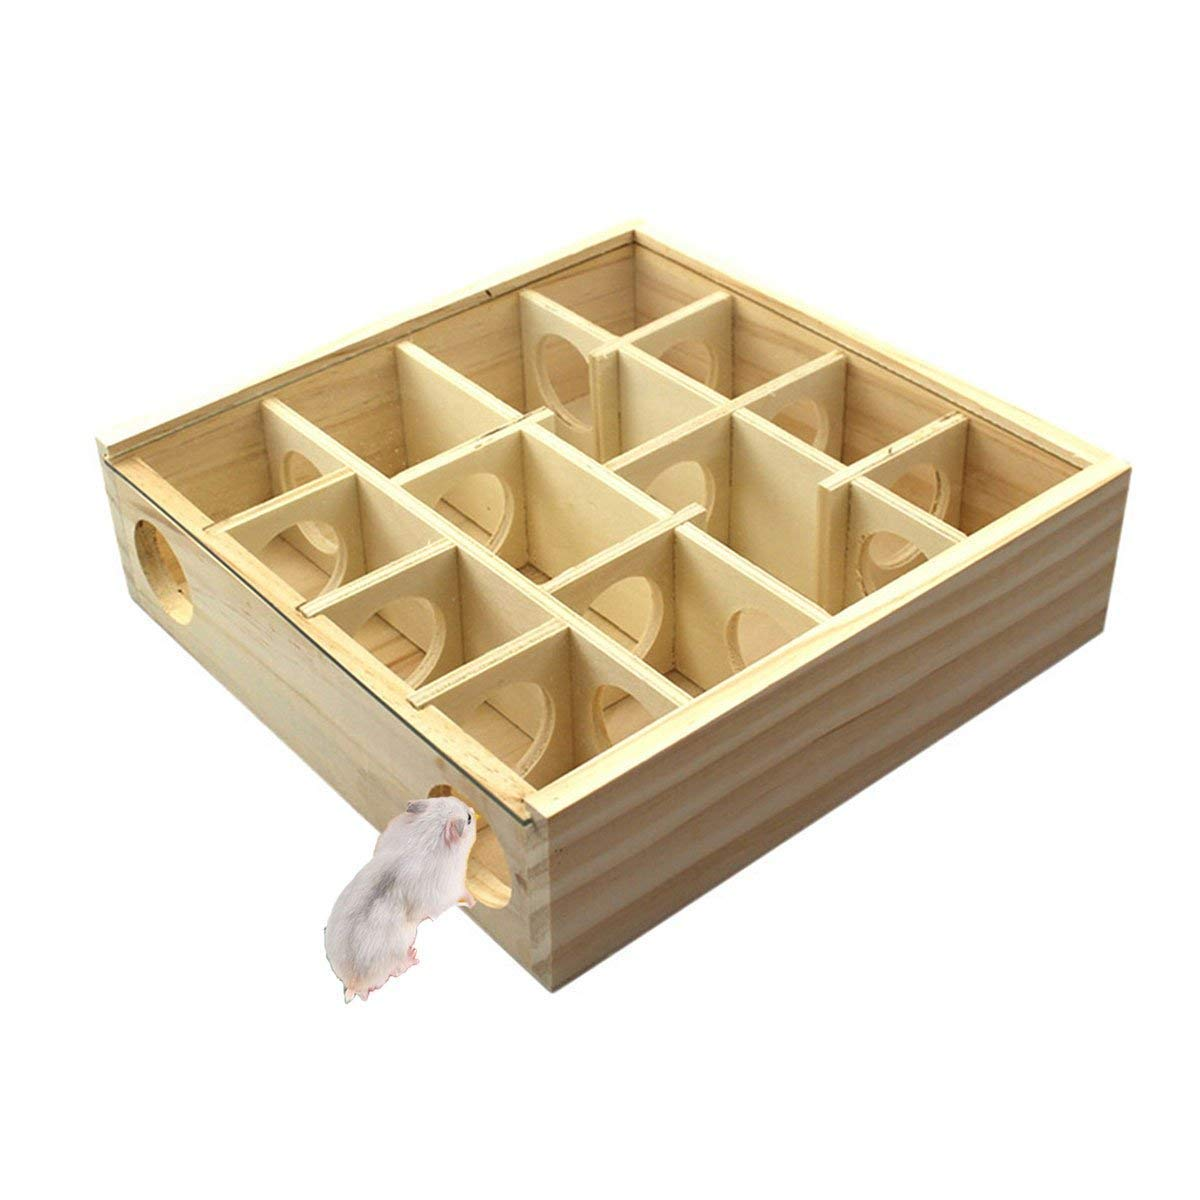 Wooden Maze Tunnel Toy with Cover Dwarf Hamster Maze Toy Safe for Small, Tiny, Mini Furry Animals, Child Gerbil Hole (Burlywood) by Litewood